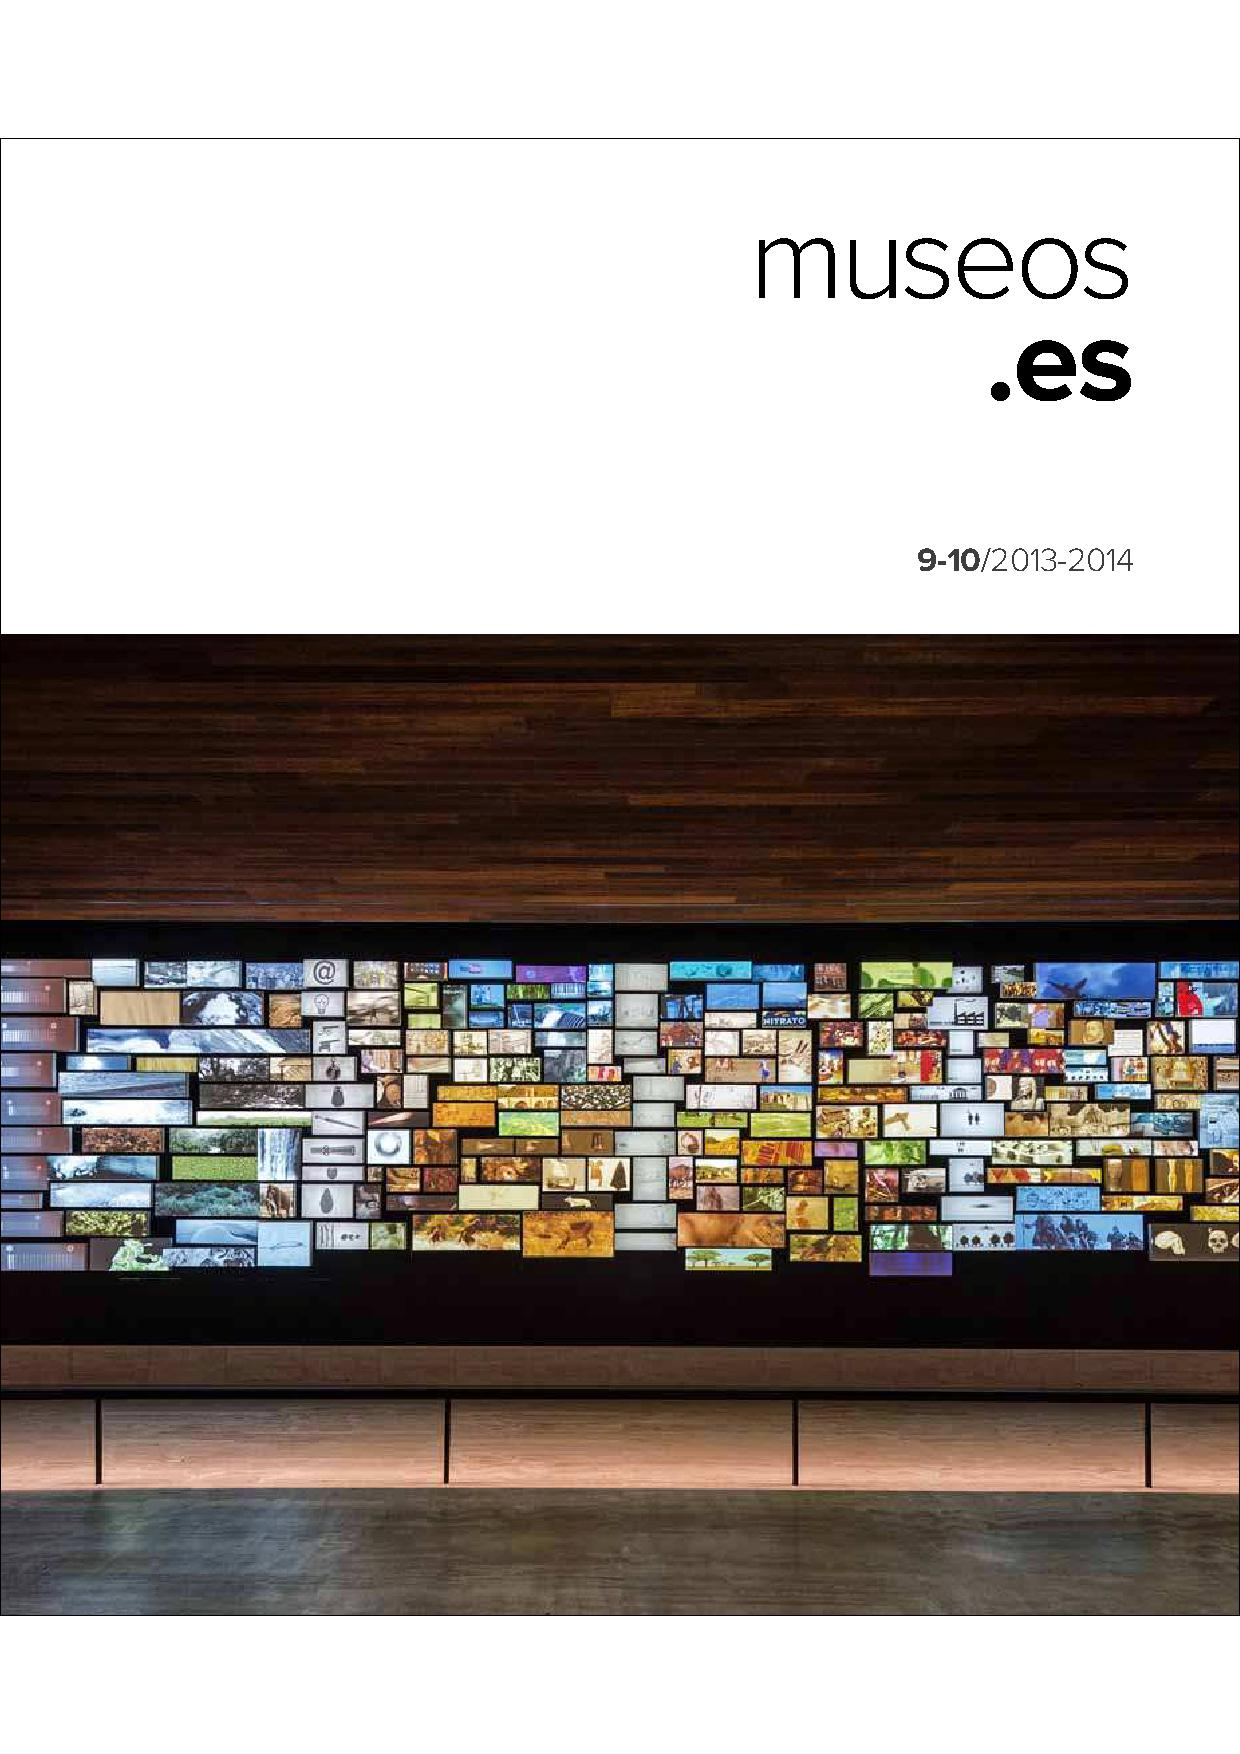 museoses-9-10--2013-2014